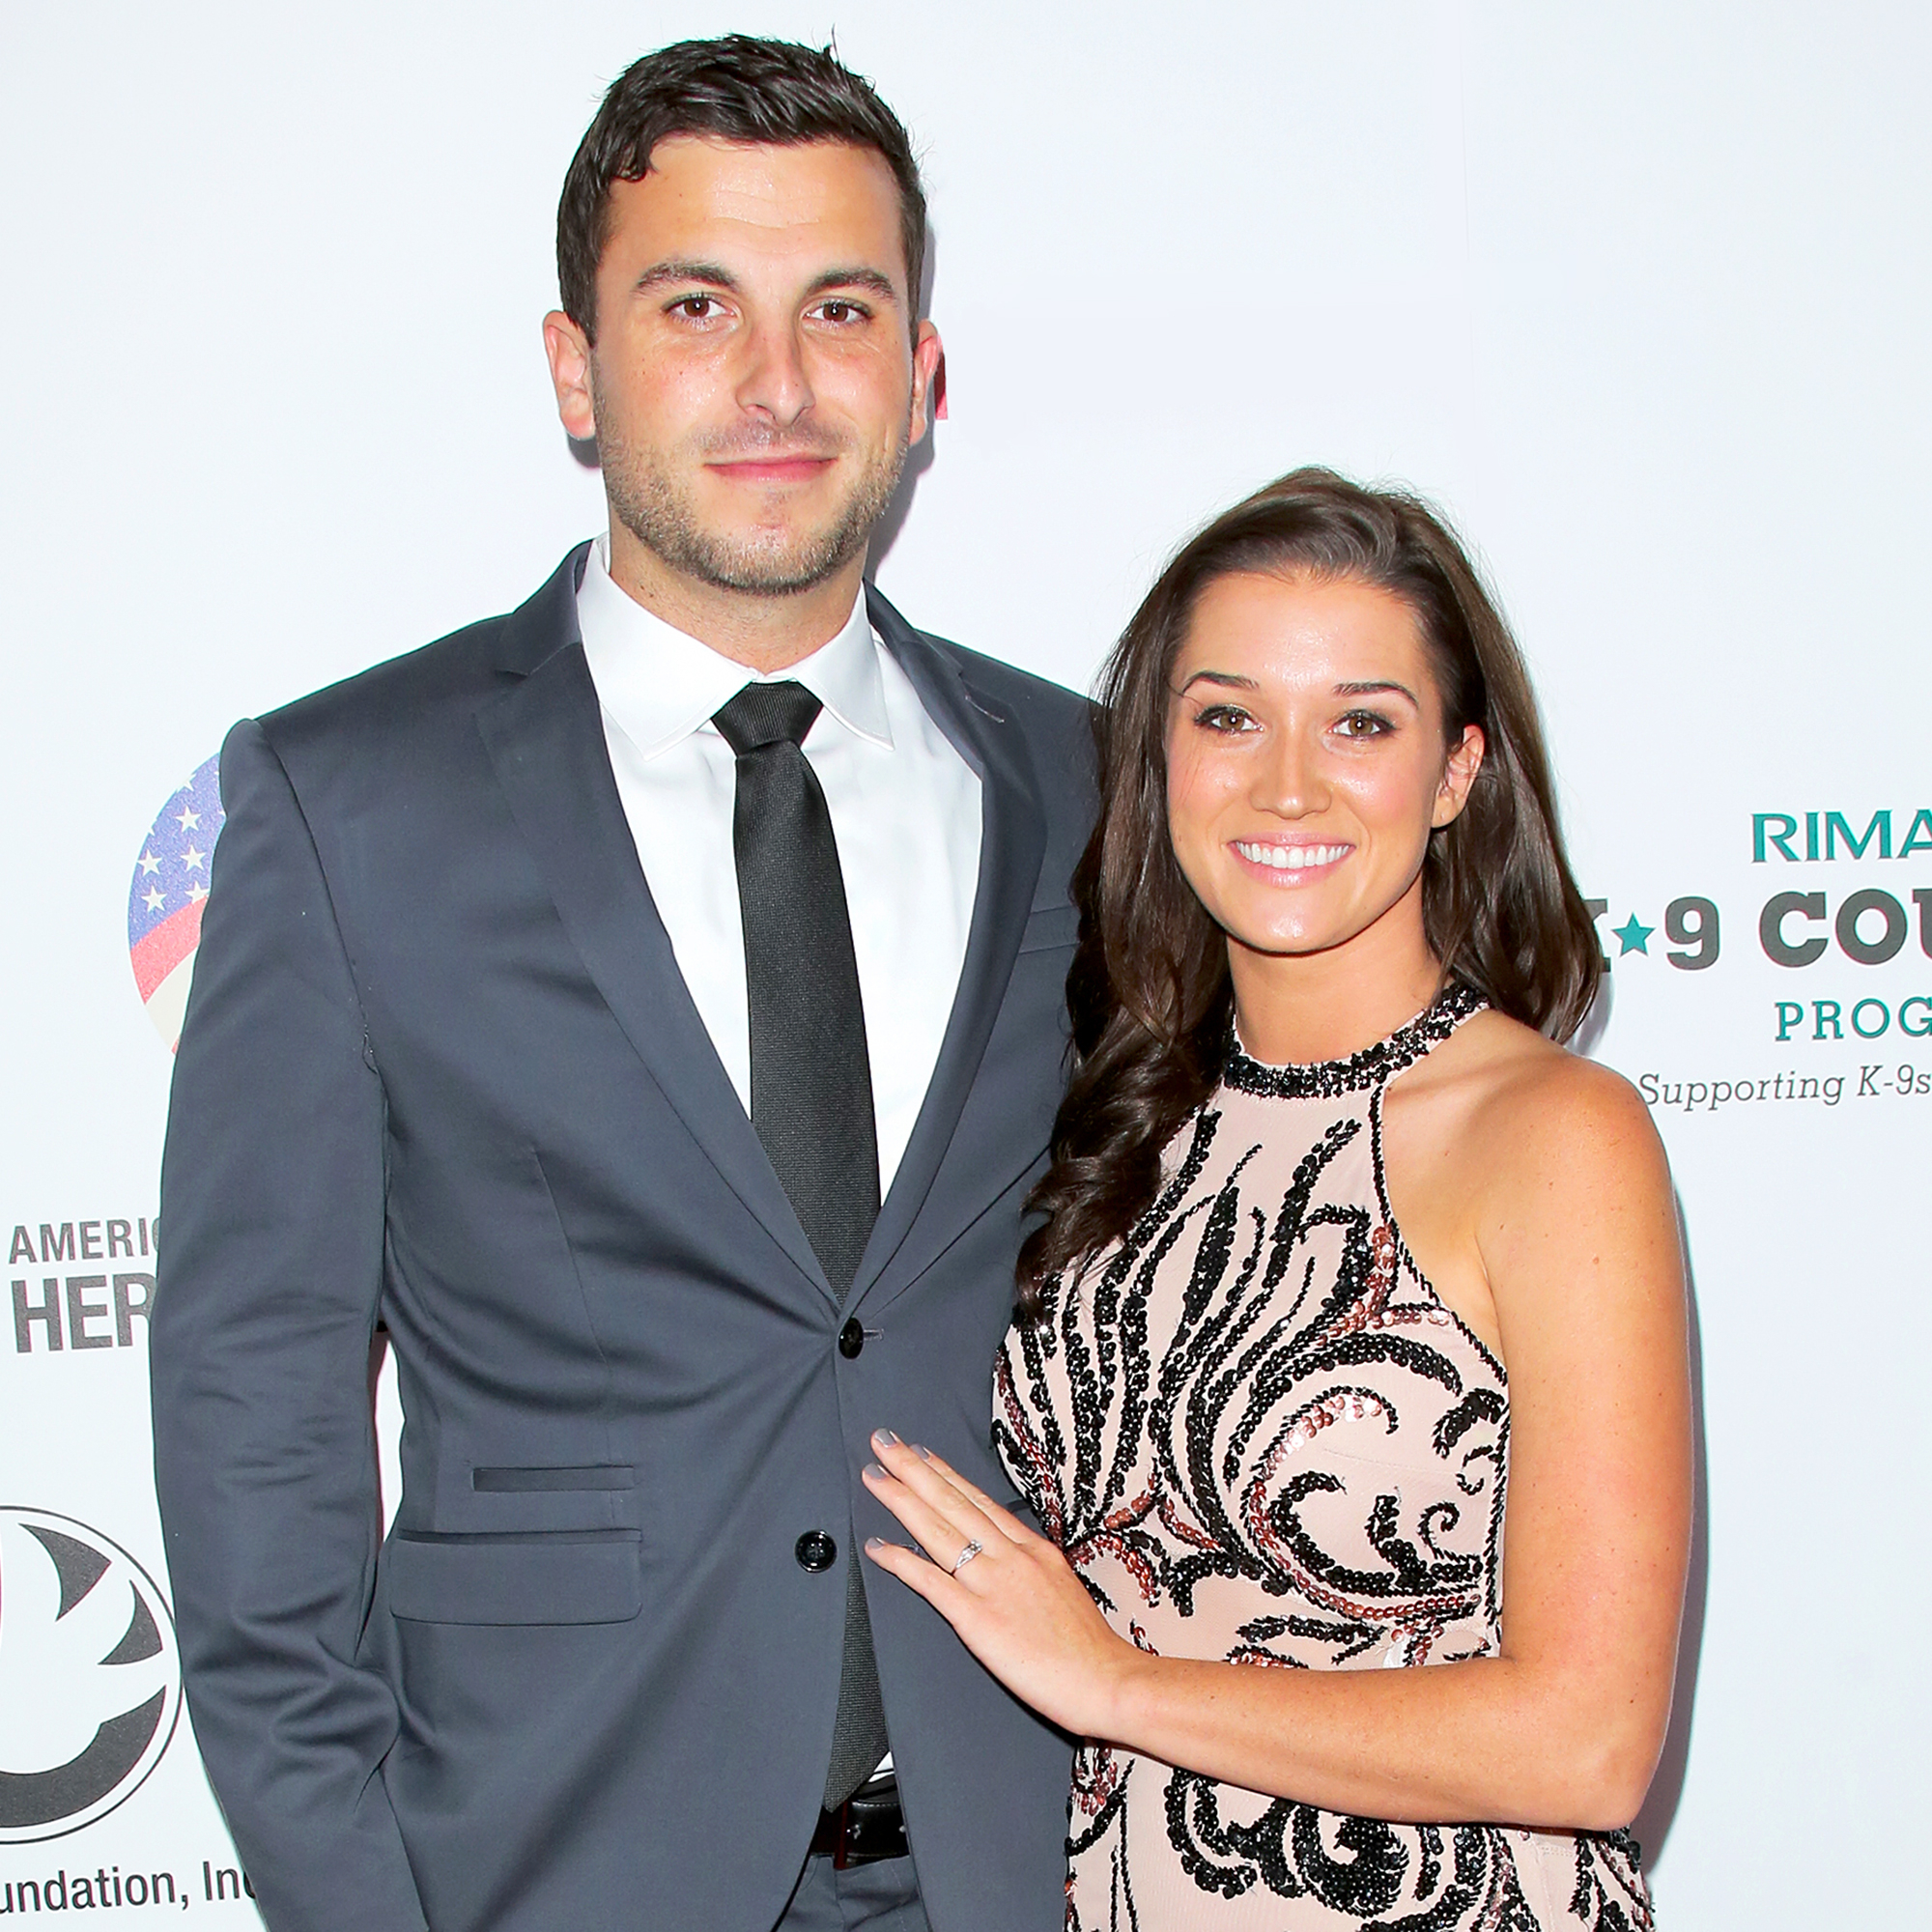 Jade Roper Playboy Pics Classy jade roper is pregnant, expecting first child with tanner tolbert